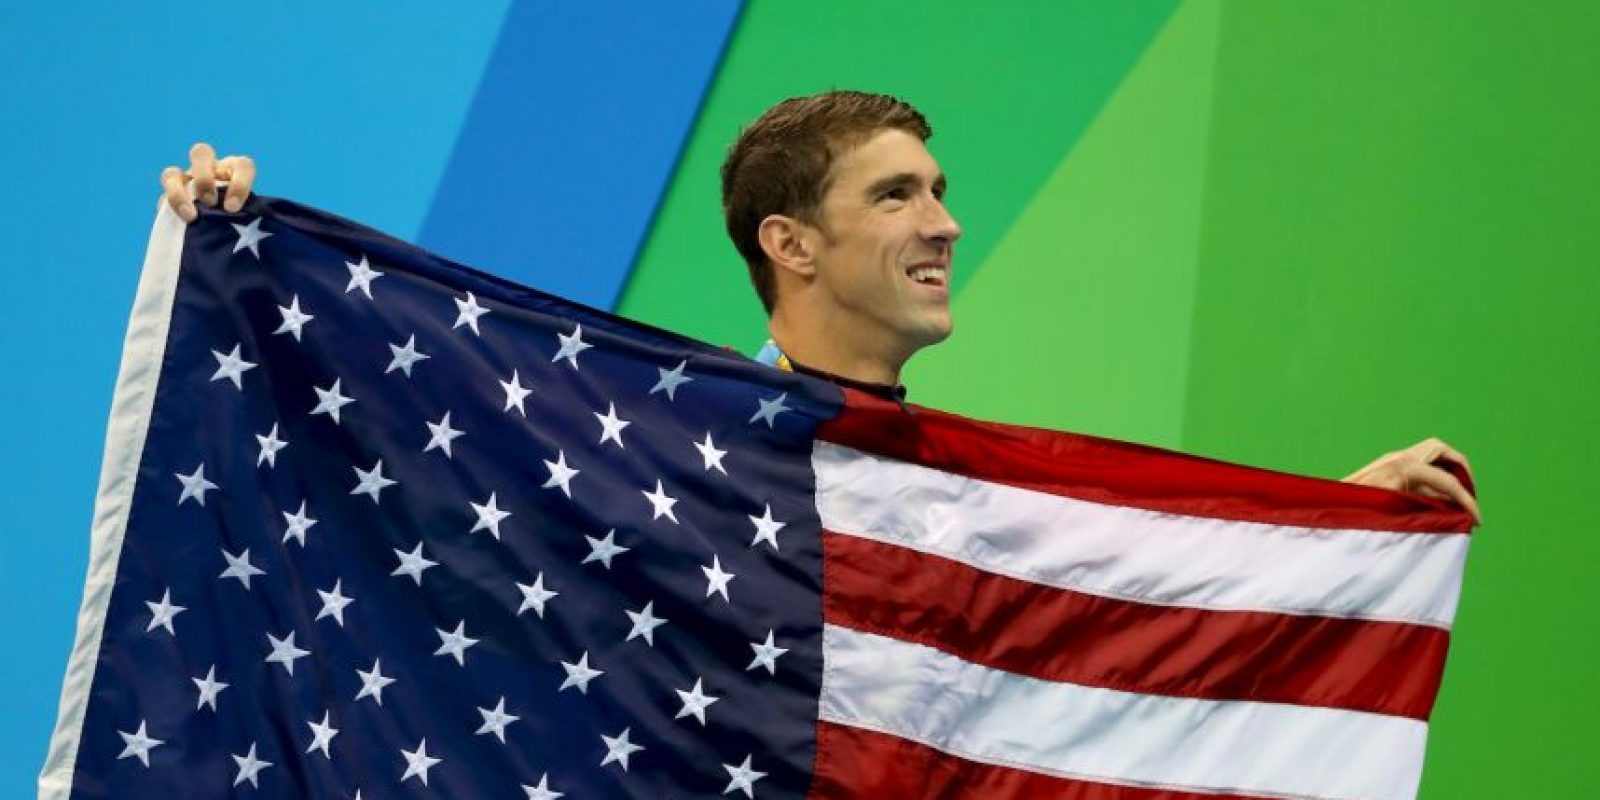 Michael Phelps Foto: Getty Images